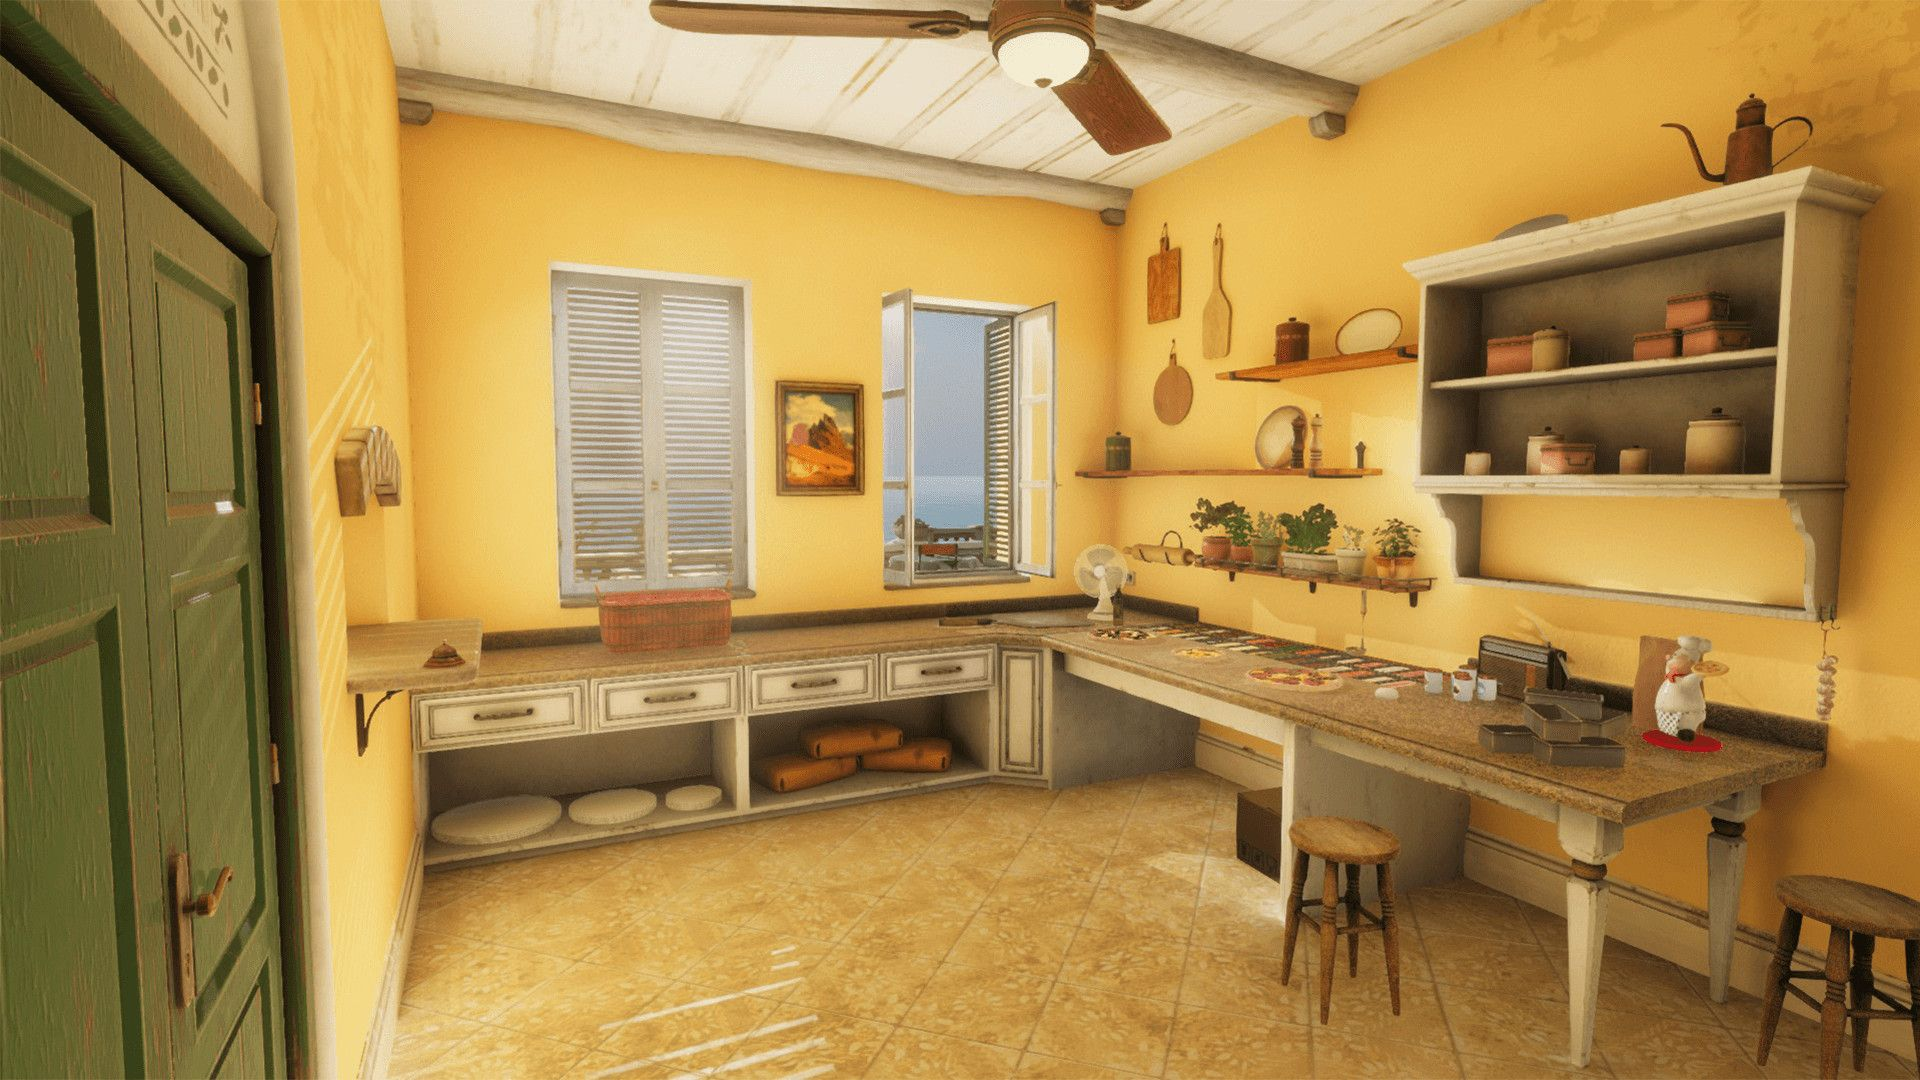 Cooking Simulator - Pizza